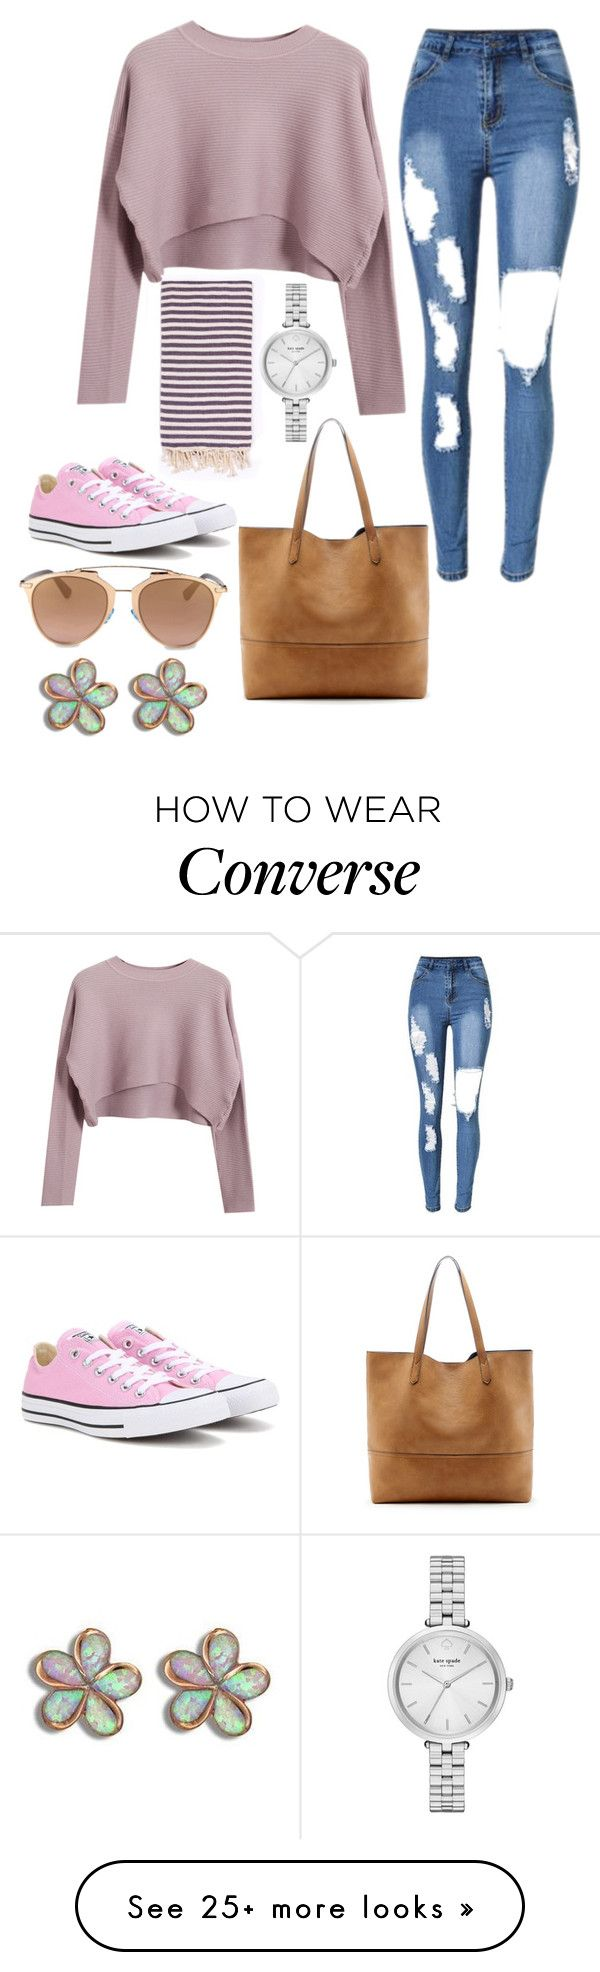 """Untitled #9420"" by beatrizibelo on Polyvore featuring Chicnova Fashion, Turkish-T, Converse, Kate Spade, Sole Society and Christian Dior"